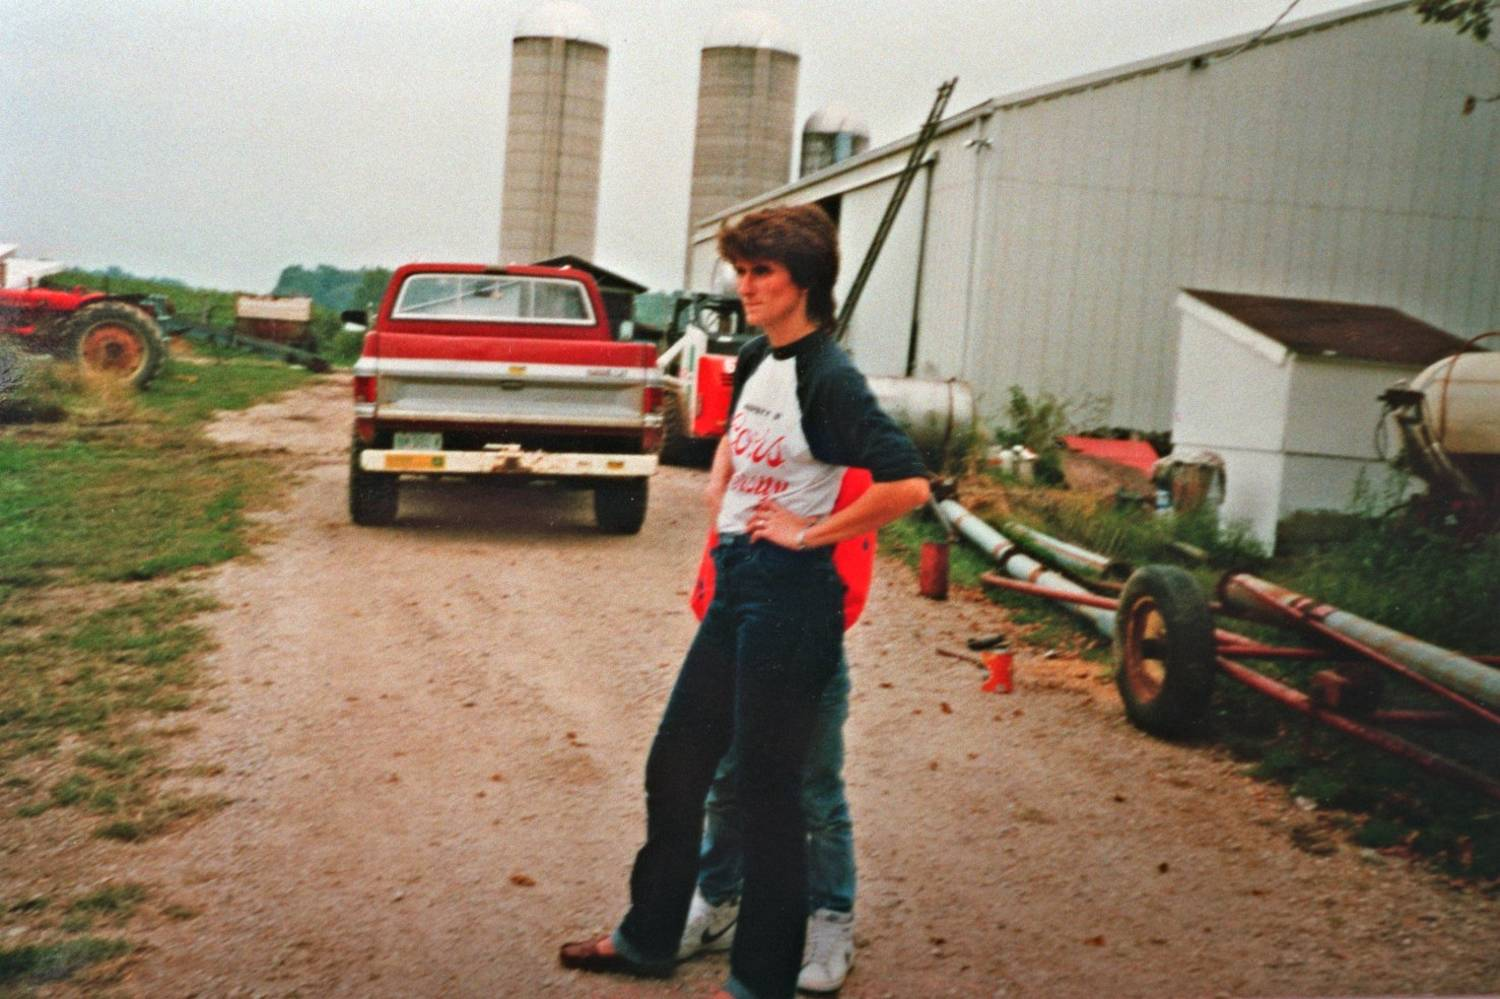 A woman dressed in a long-sleeved t-shirt and jeans stands outside, with farm equipment and grain silos in the background.